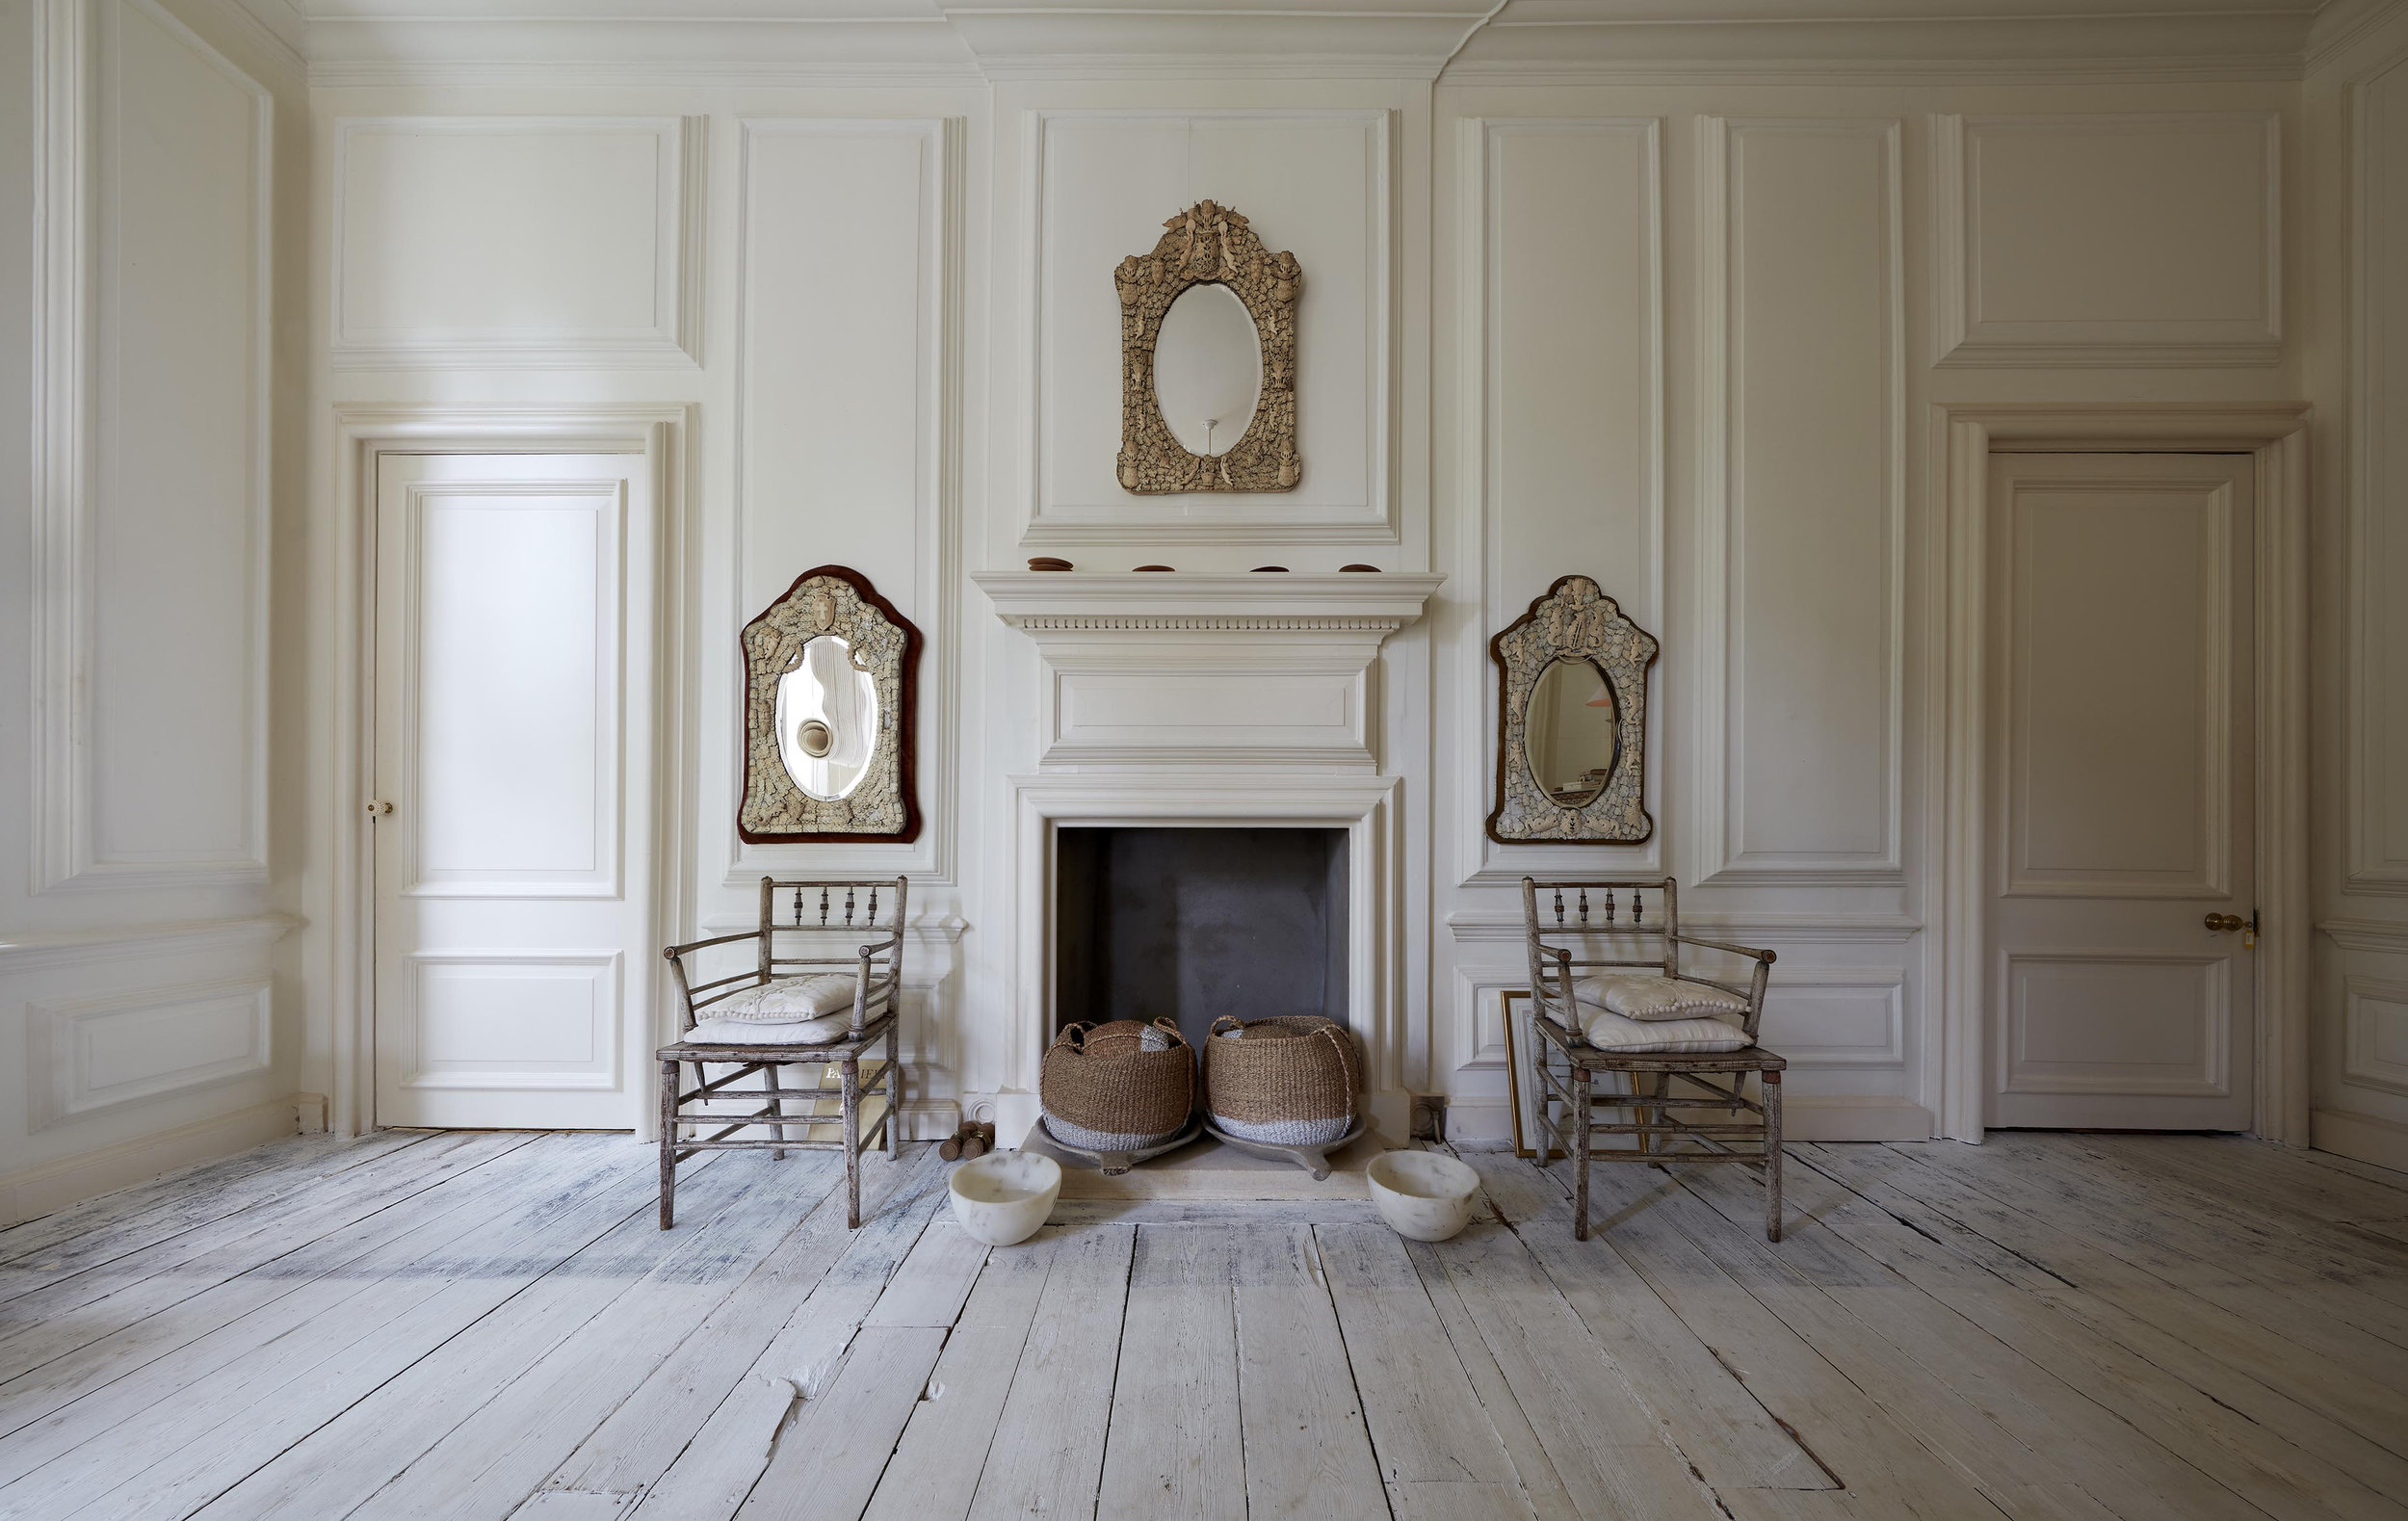 White Bed Fireplace.jpg